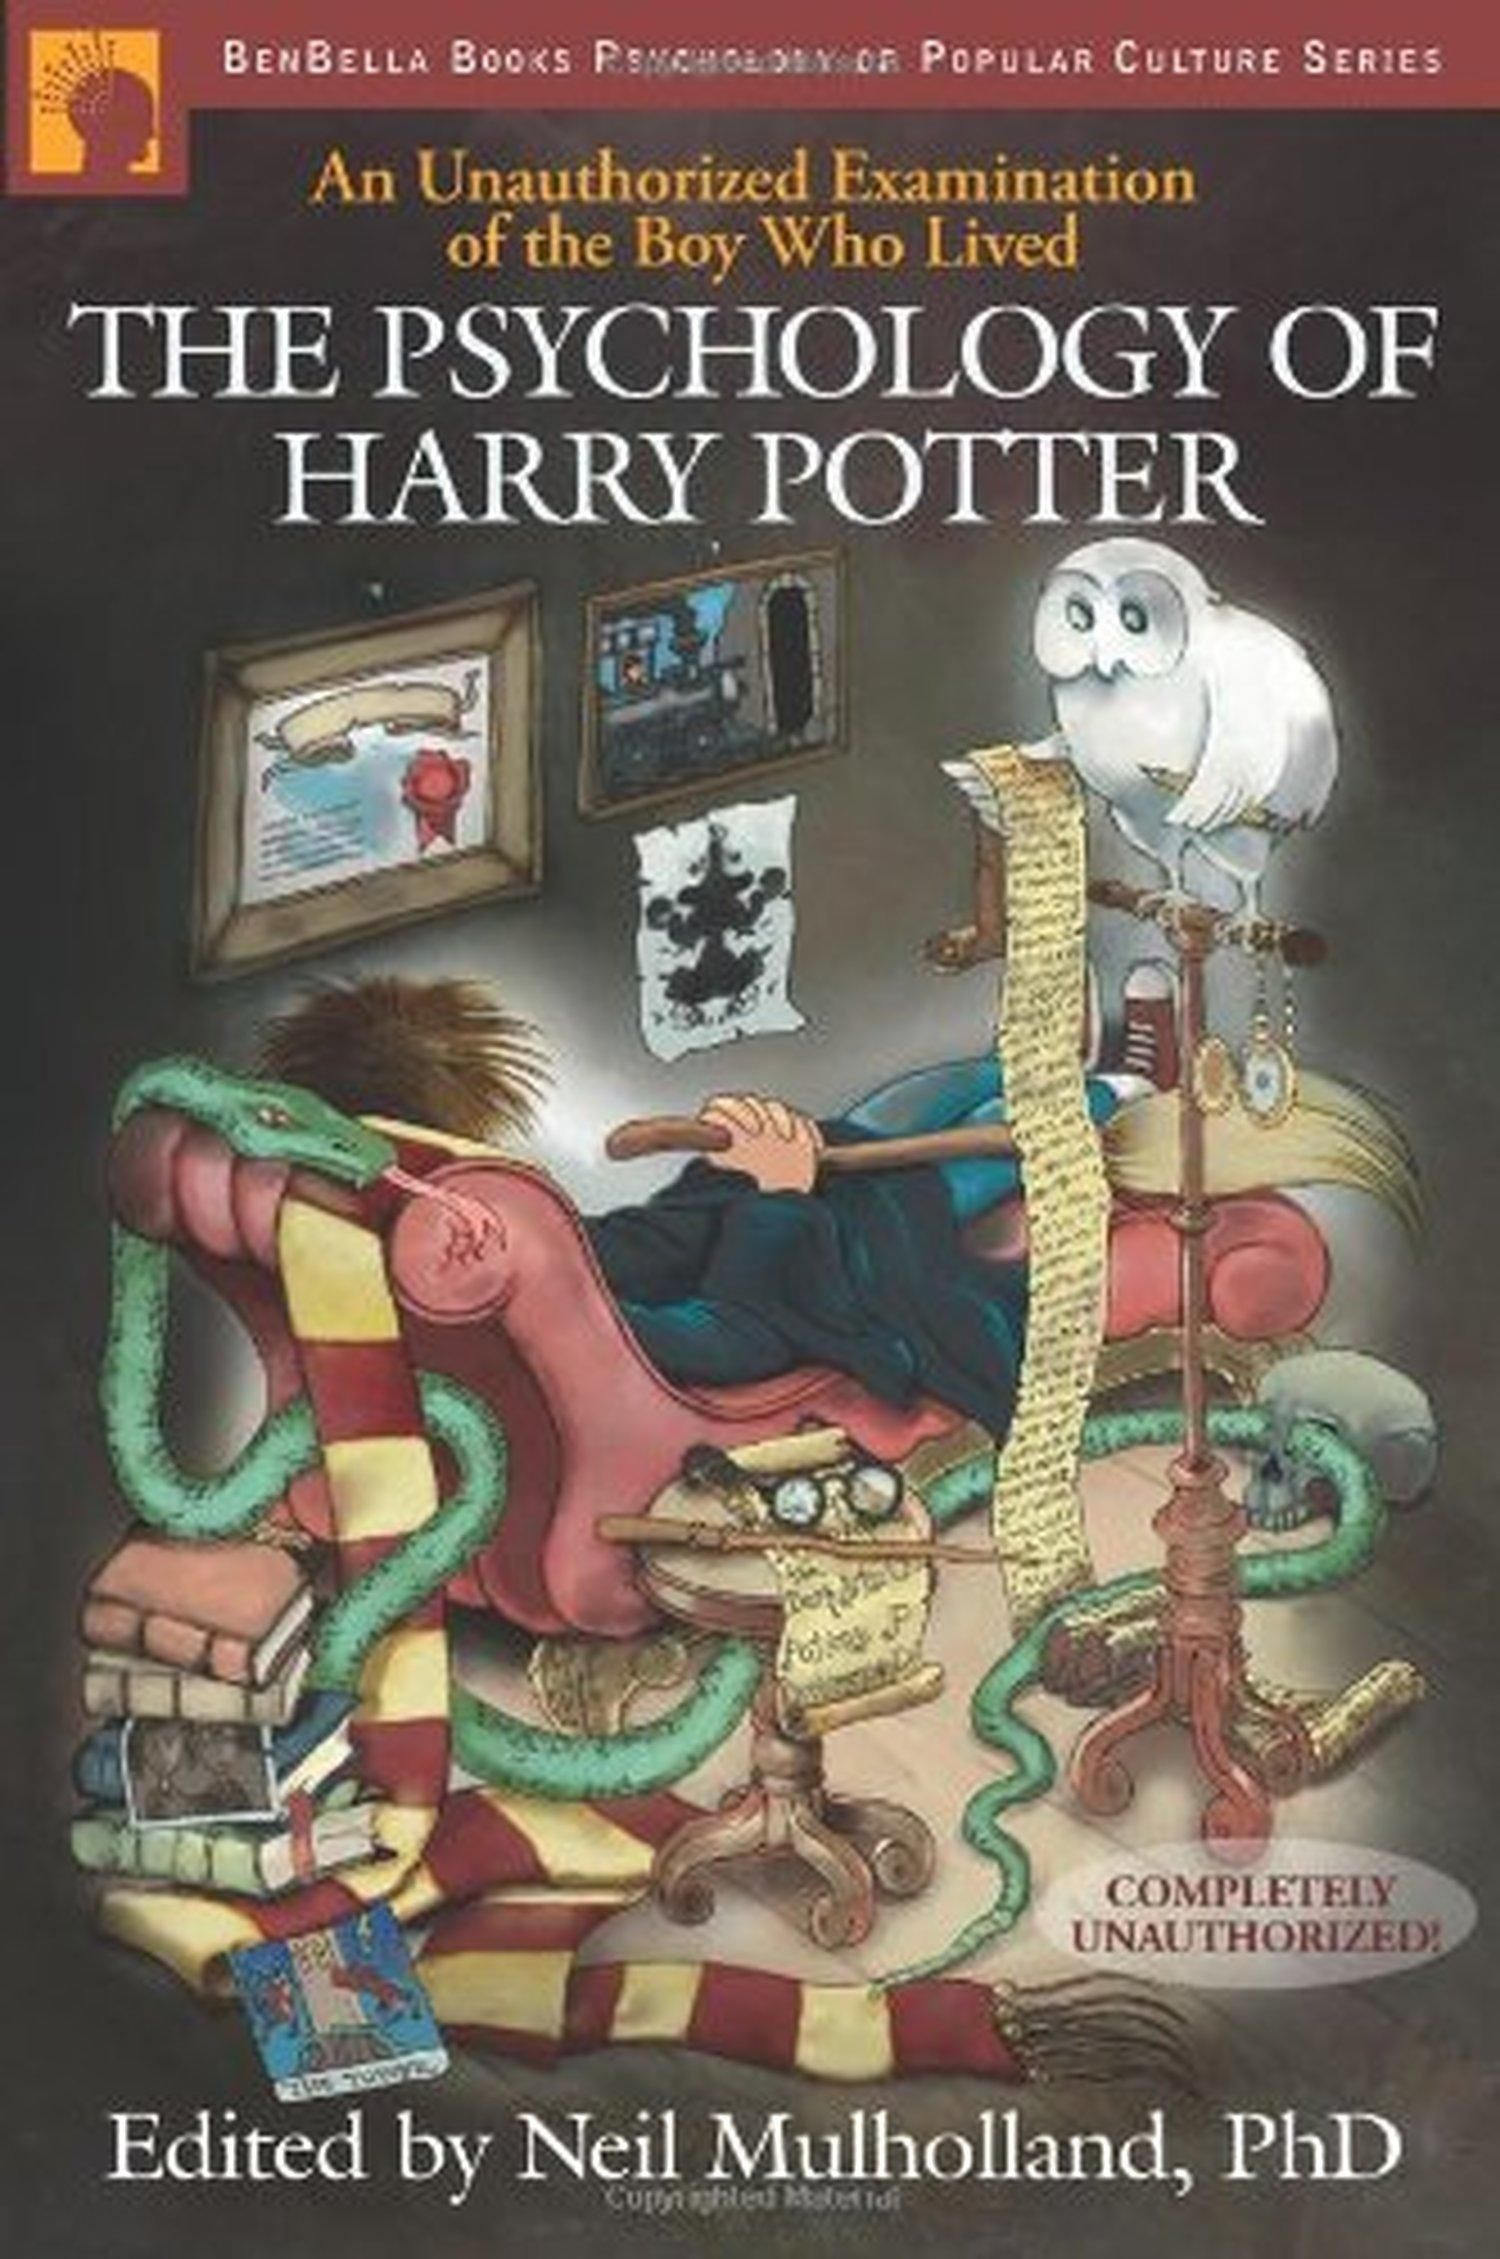 The Psychology Of Harry Potter An Unauthorized Examination Of The